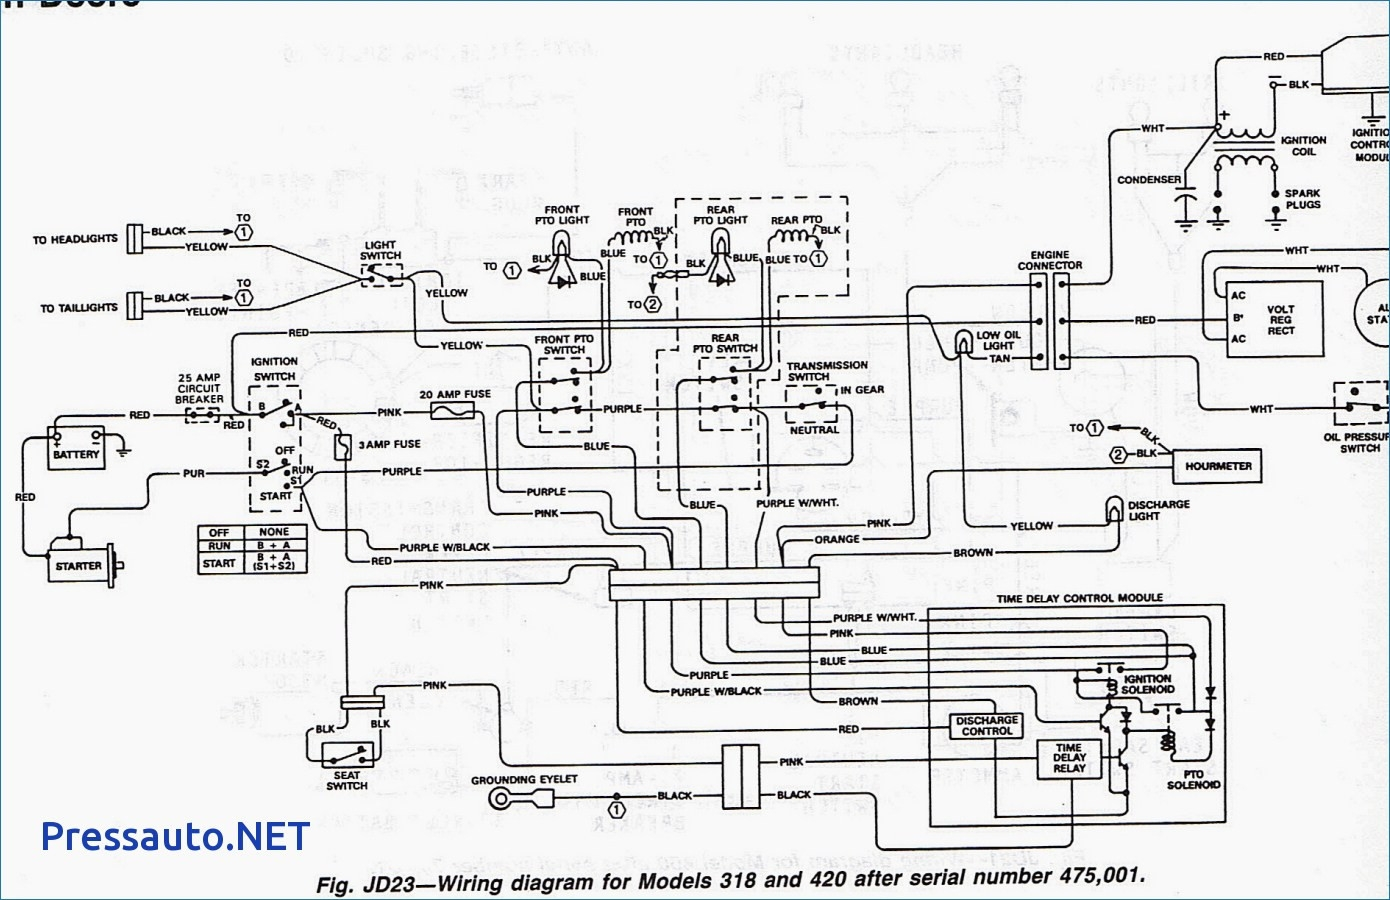 John Deere 5203 Wiring Schematics | Wiring Schematic Diagram ... on john deere parts diagrams, john deere radio wiring diagram, john deere ignition switch wiring, john deere diagnostic codes, john deere parts specifications, john deere solenoid schematics, john deere solenoid wiring, john deere maintenance schedule,